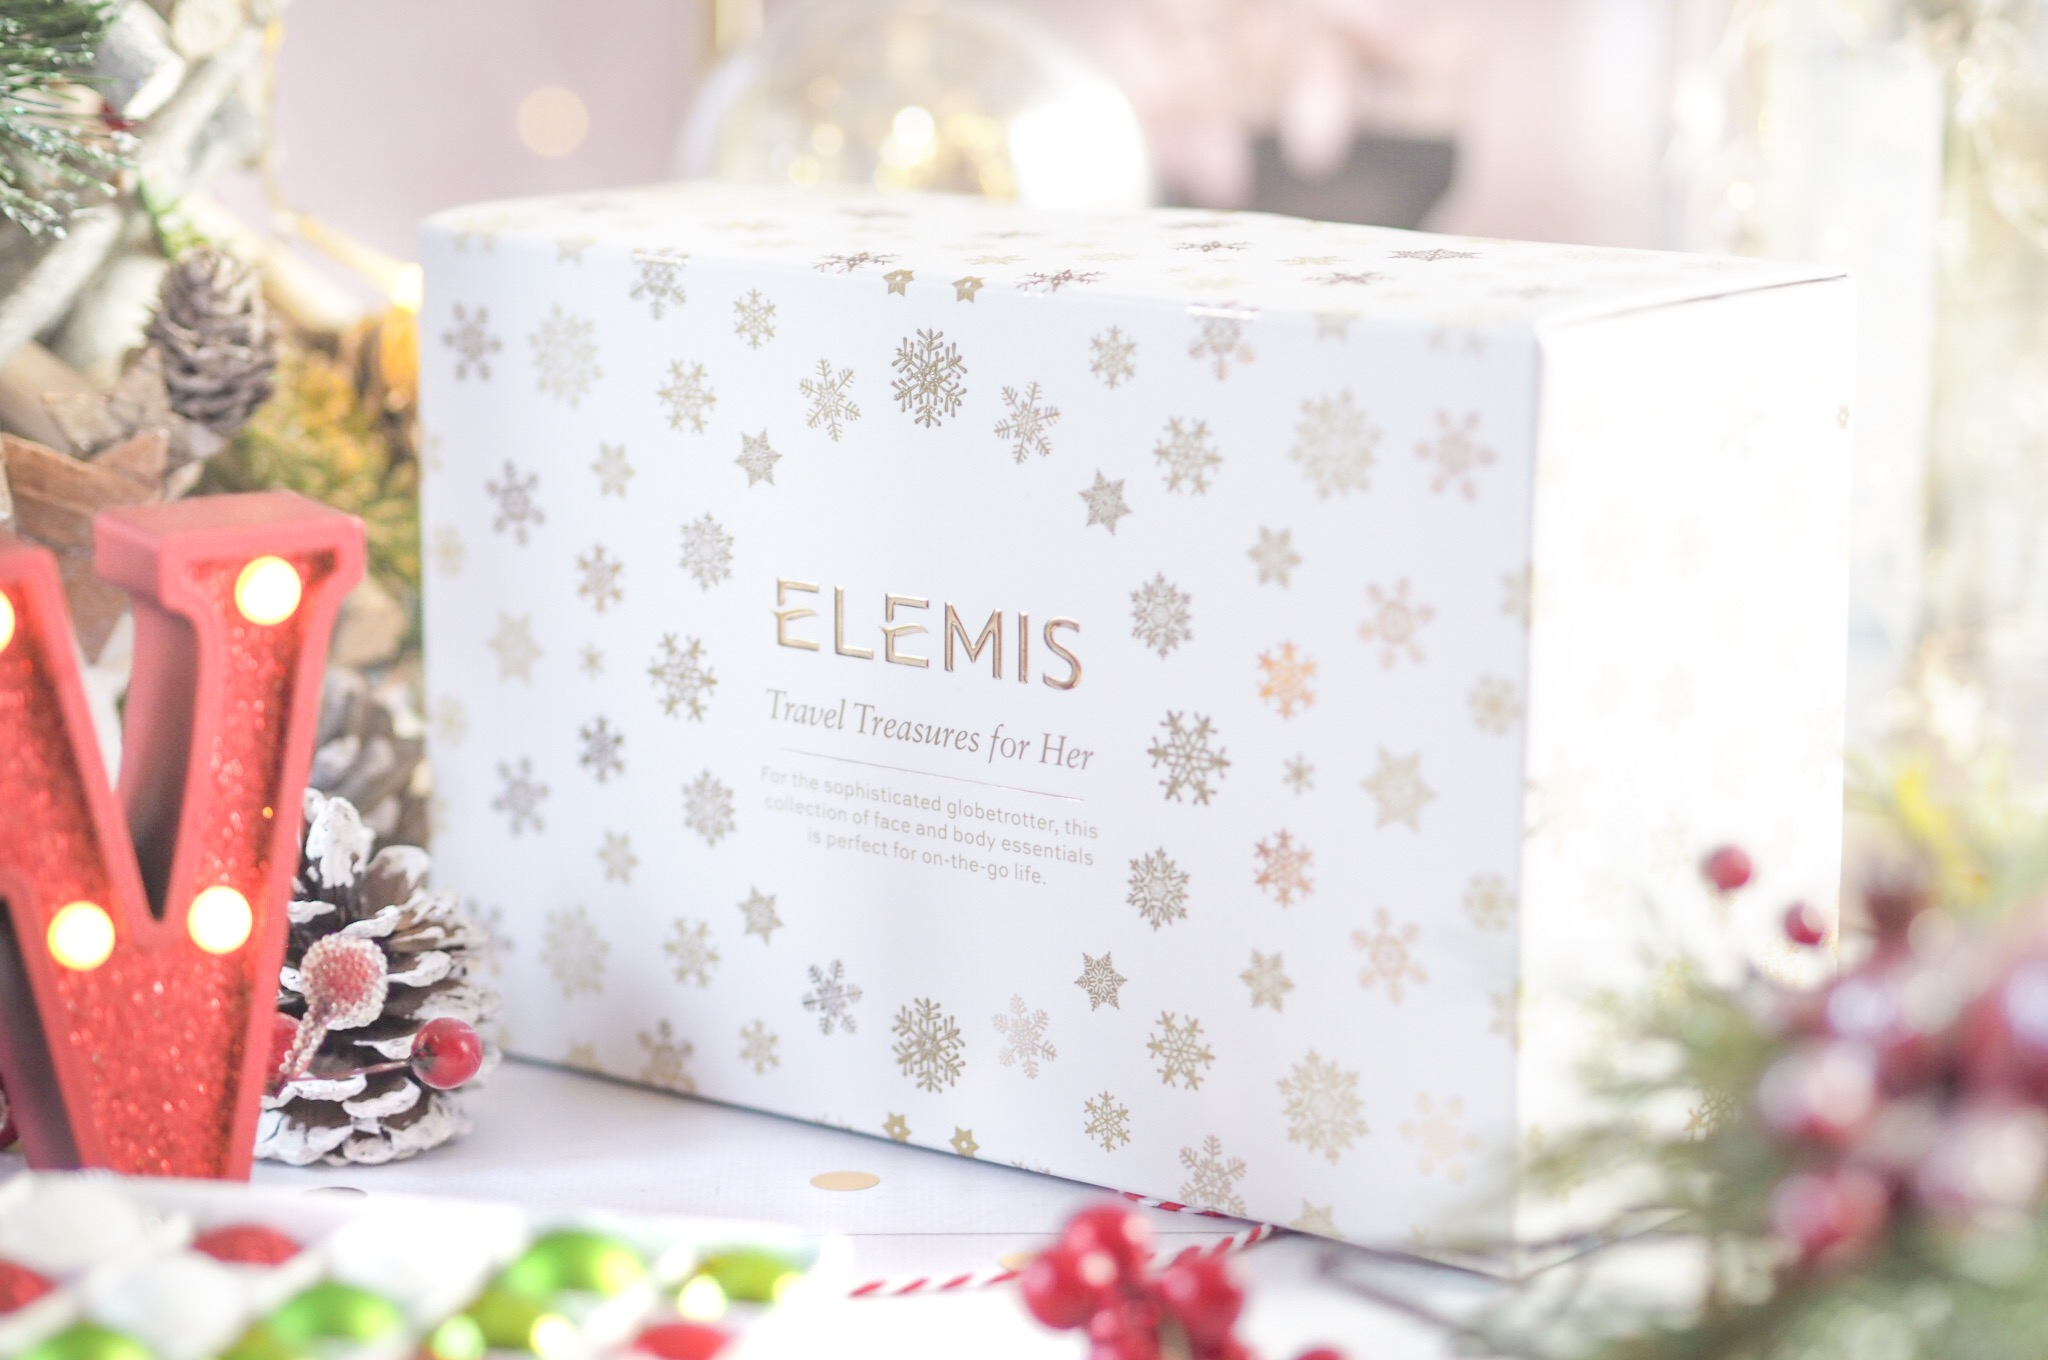 Elemis Travel Treasures For Her